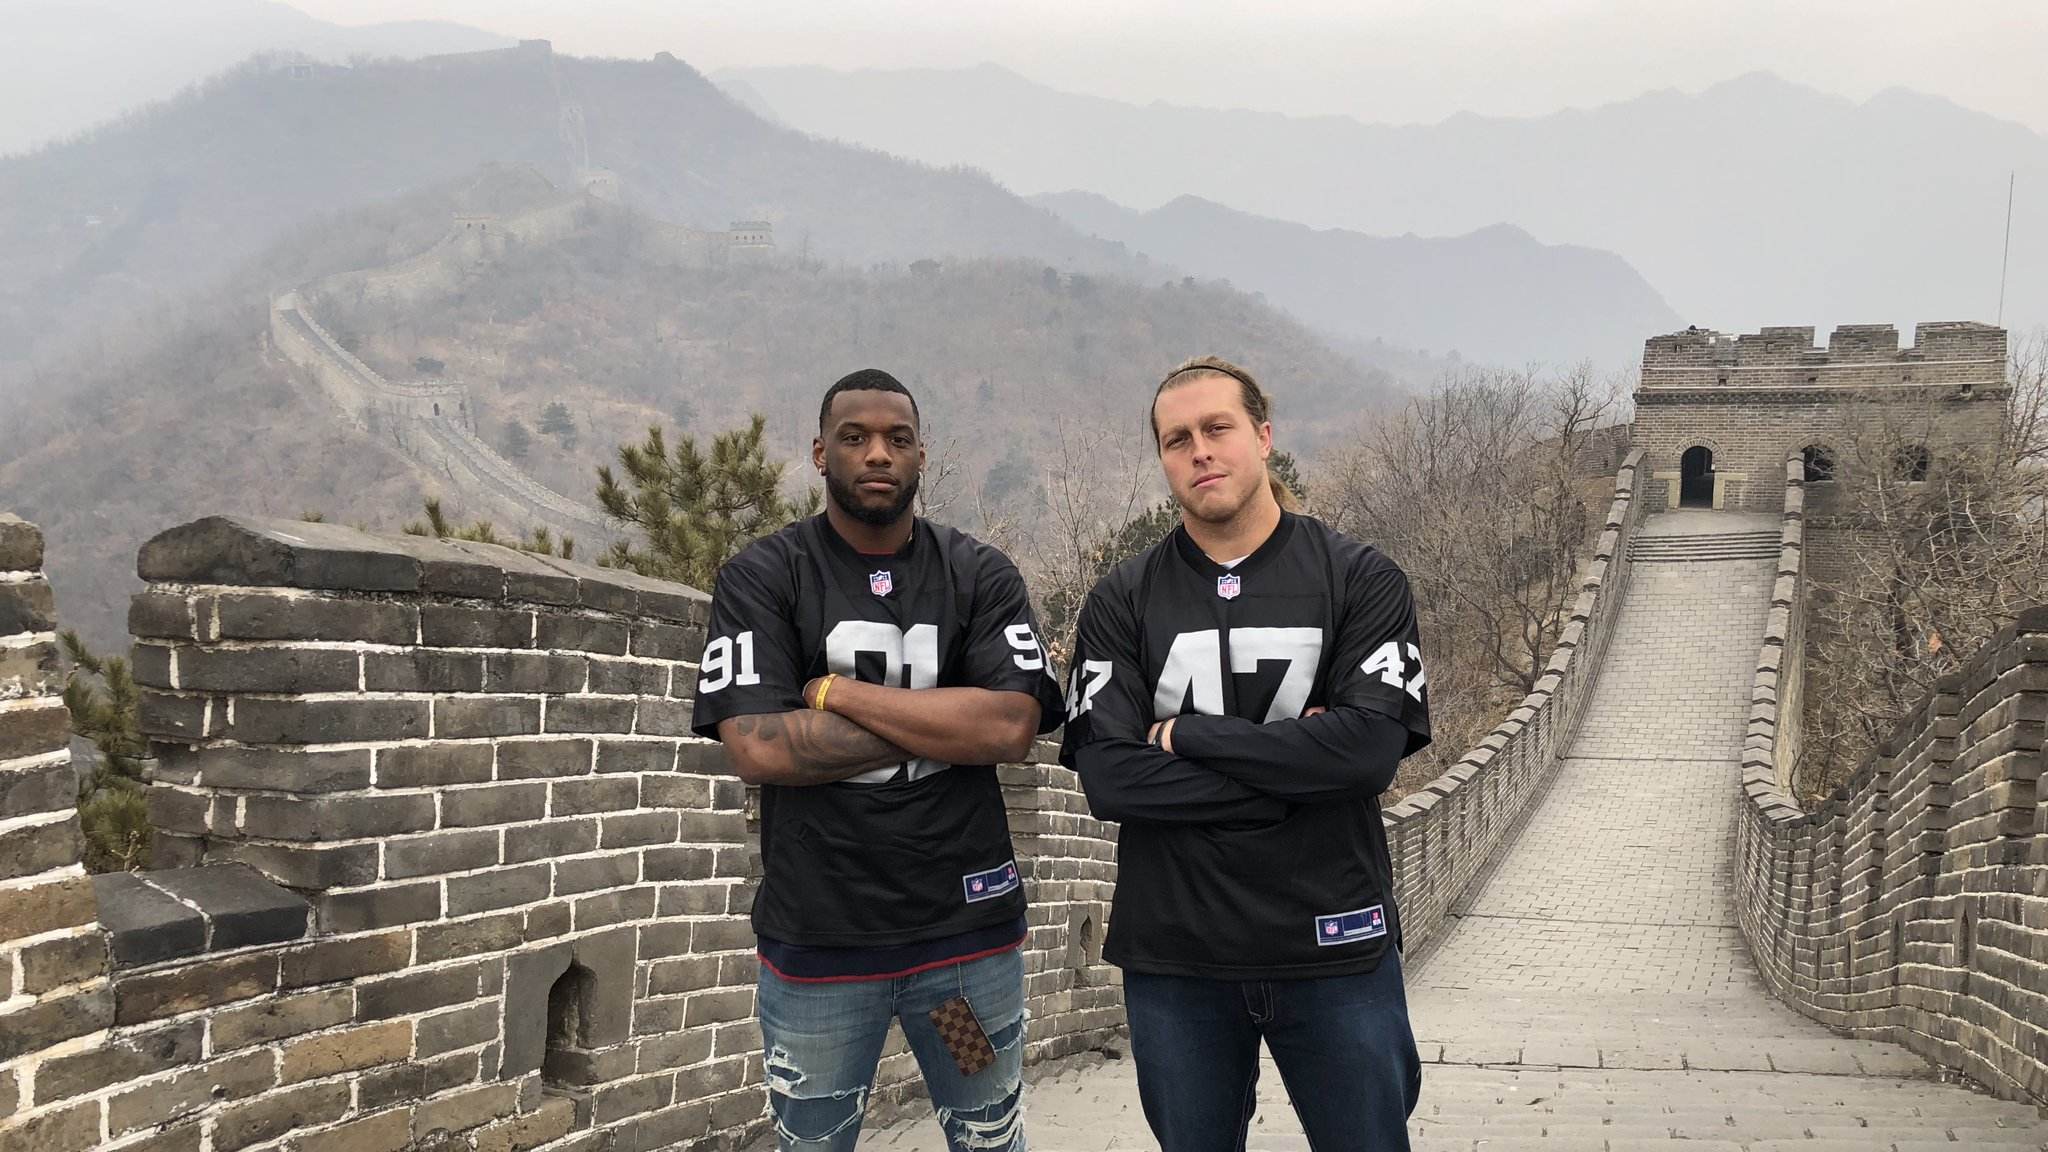 Meanwhile, in China...  #RaidersInChina https://t.co/8qVrRisG0M